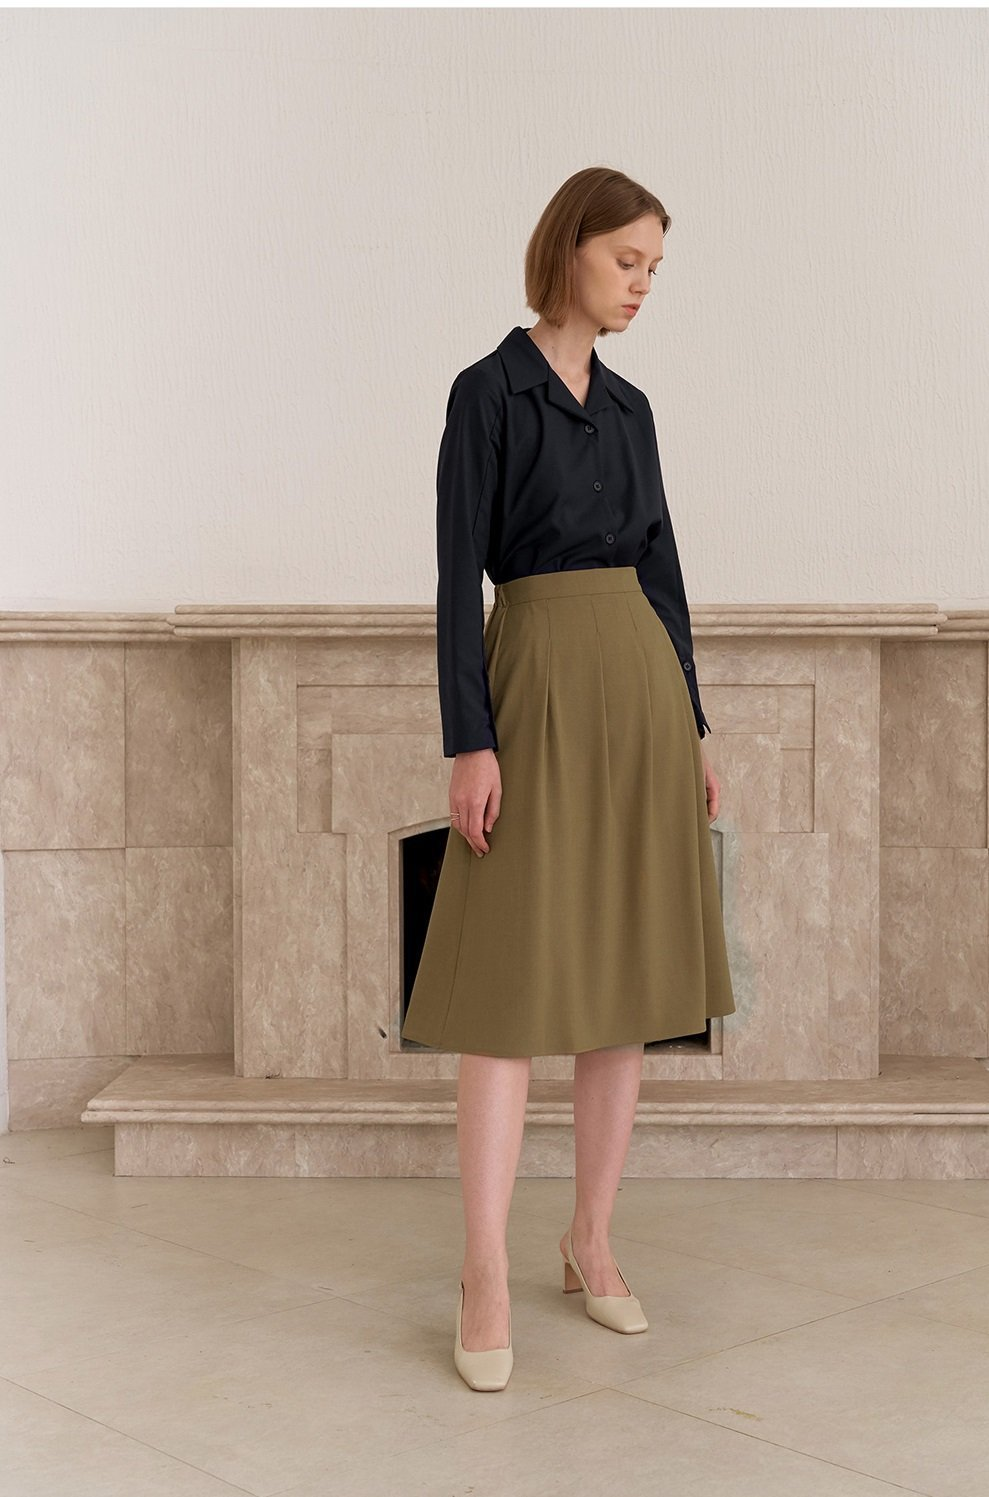 TUCKED SKIRT - The Clothing LoungeYUPPE